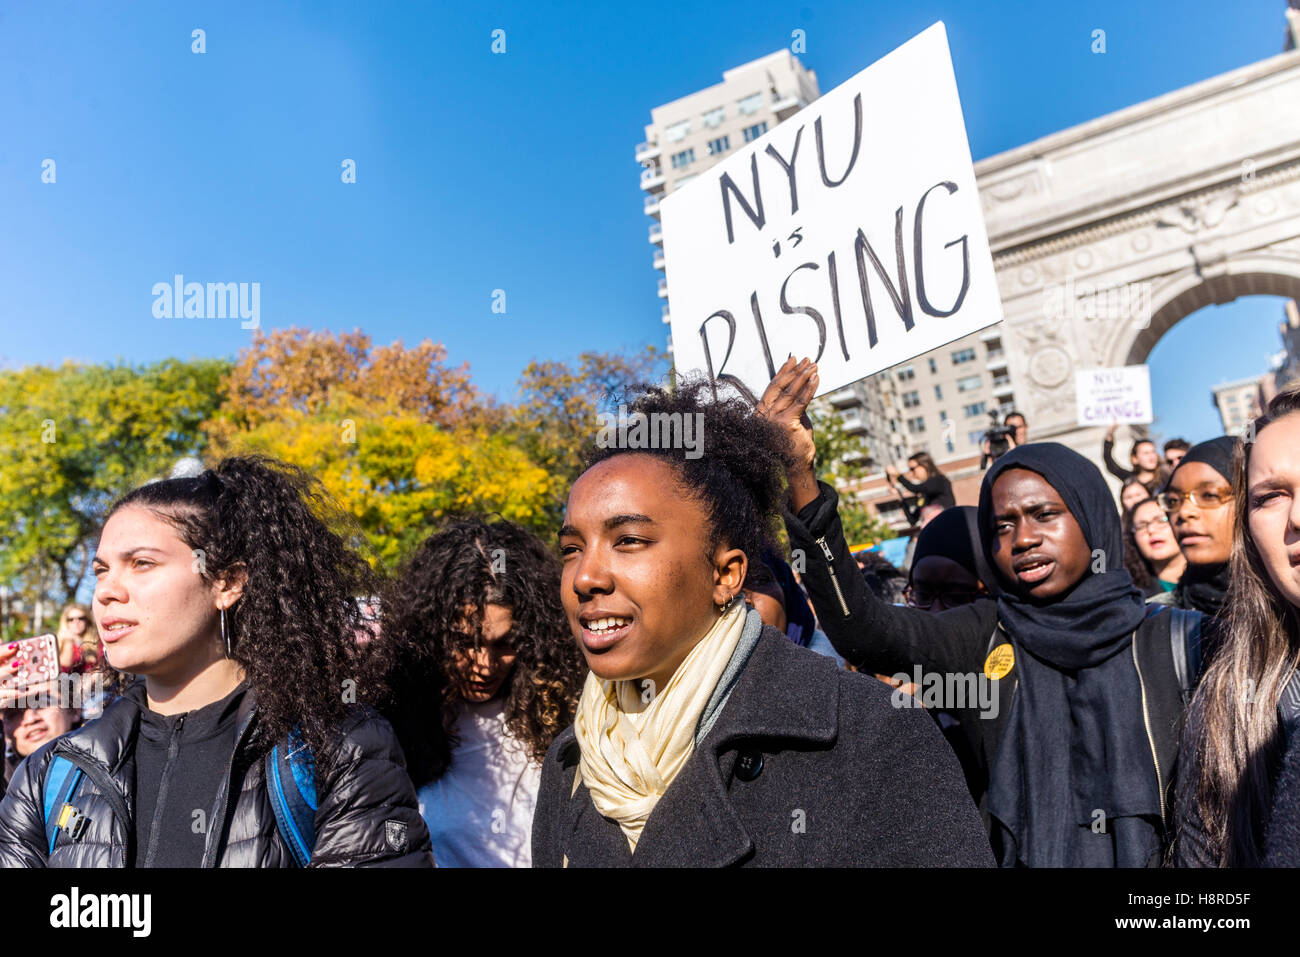 New York, USA. 16th Nov, 2016. Eight days after the US Presidential election, NYU students and faculty walked out - Stock Image